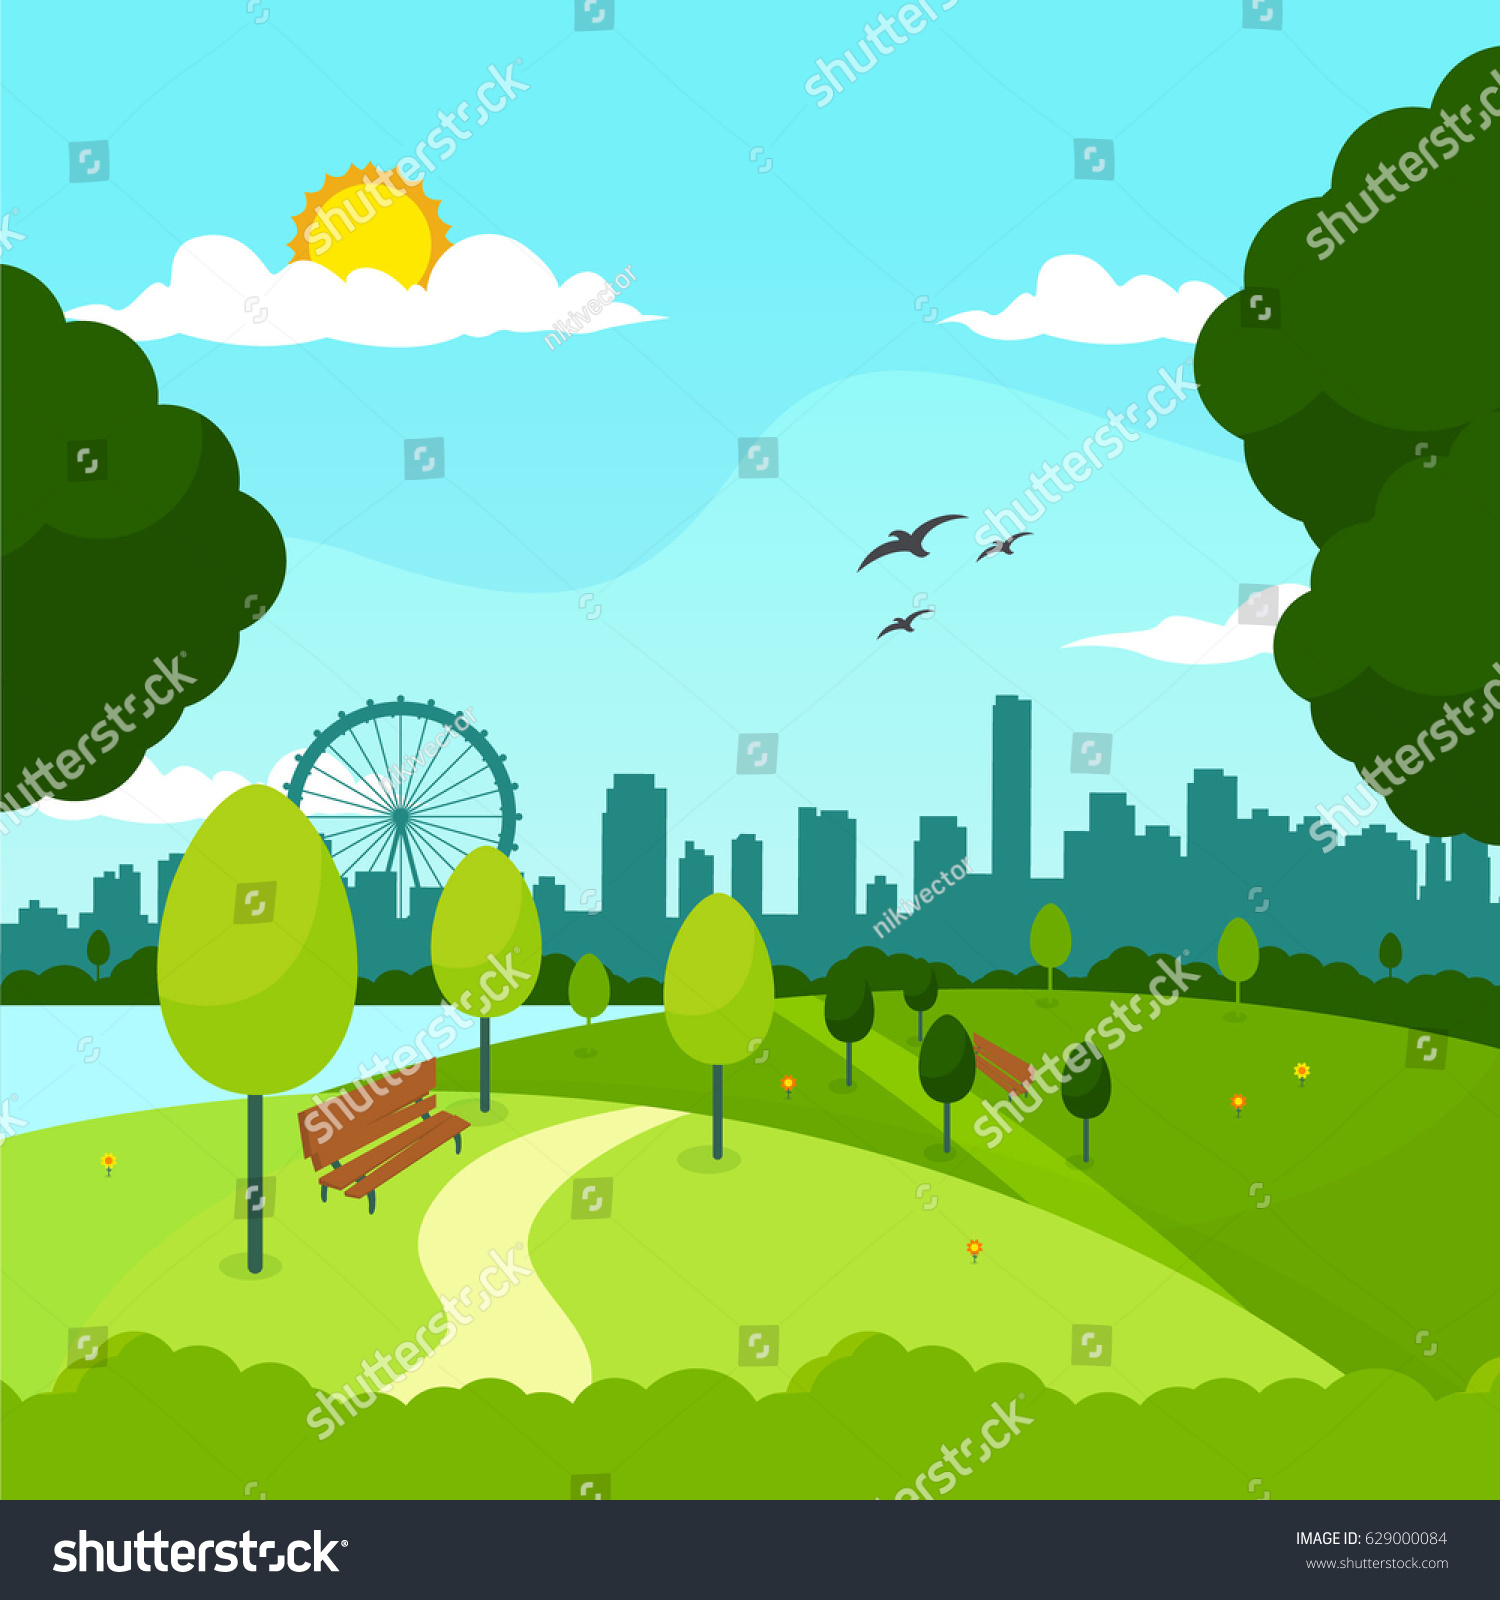 city park vector - photo #9